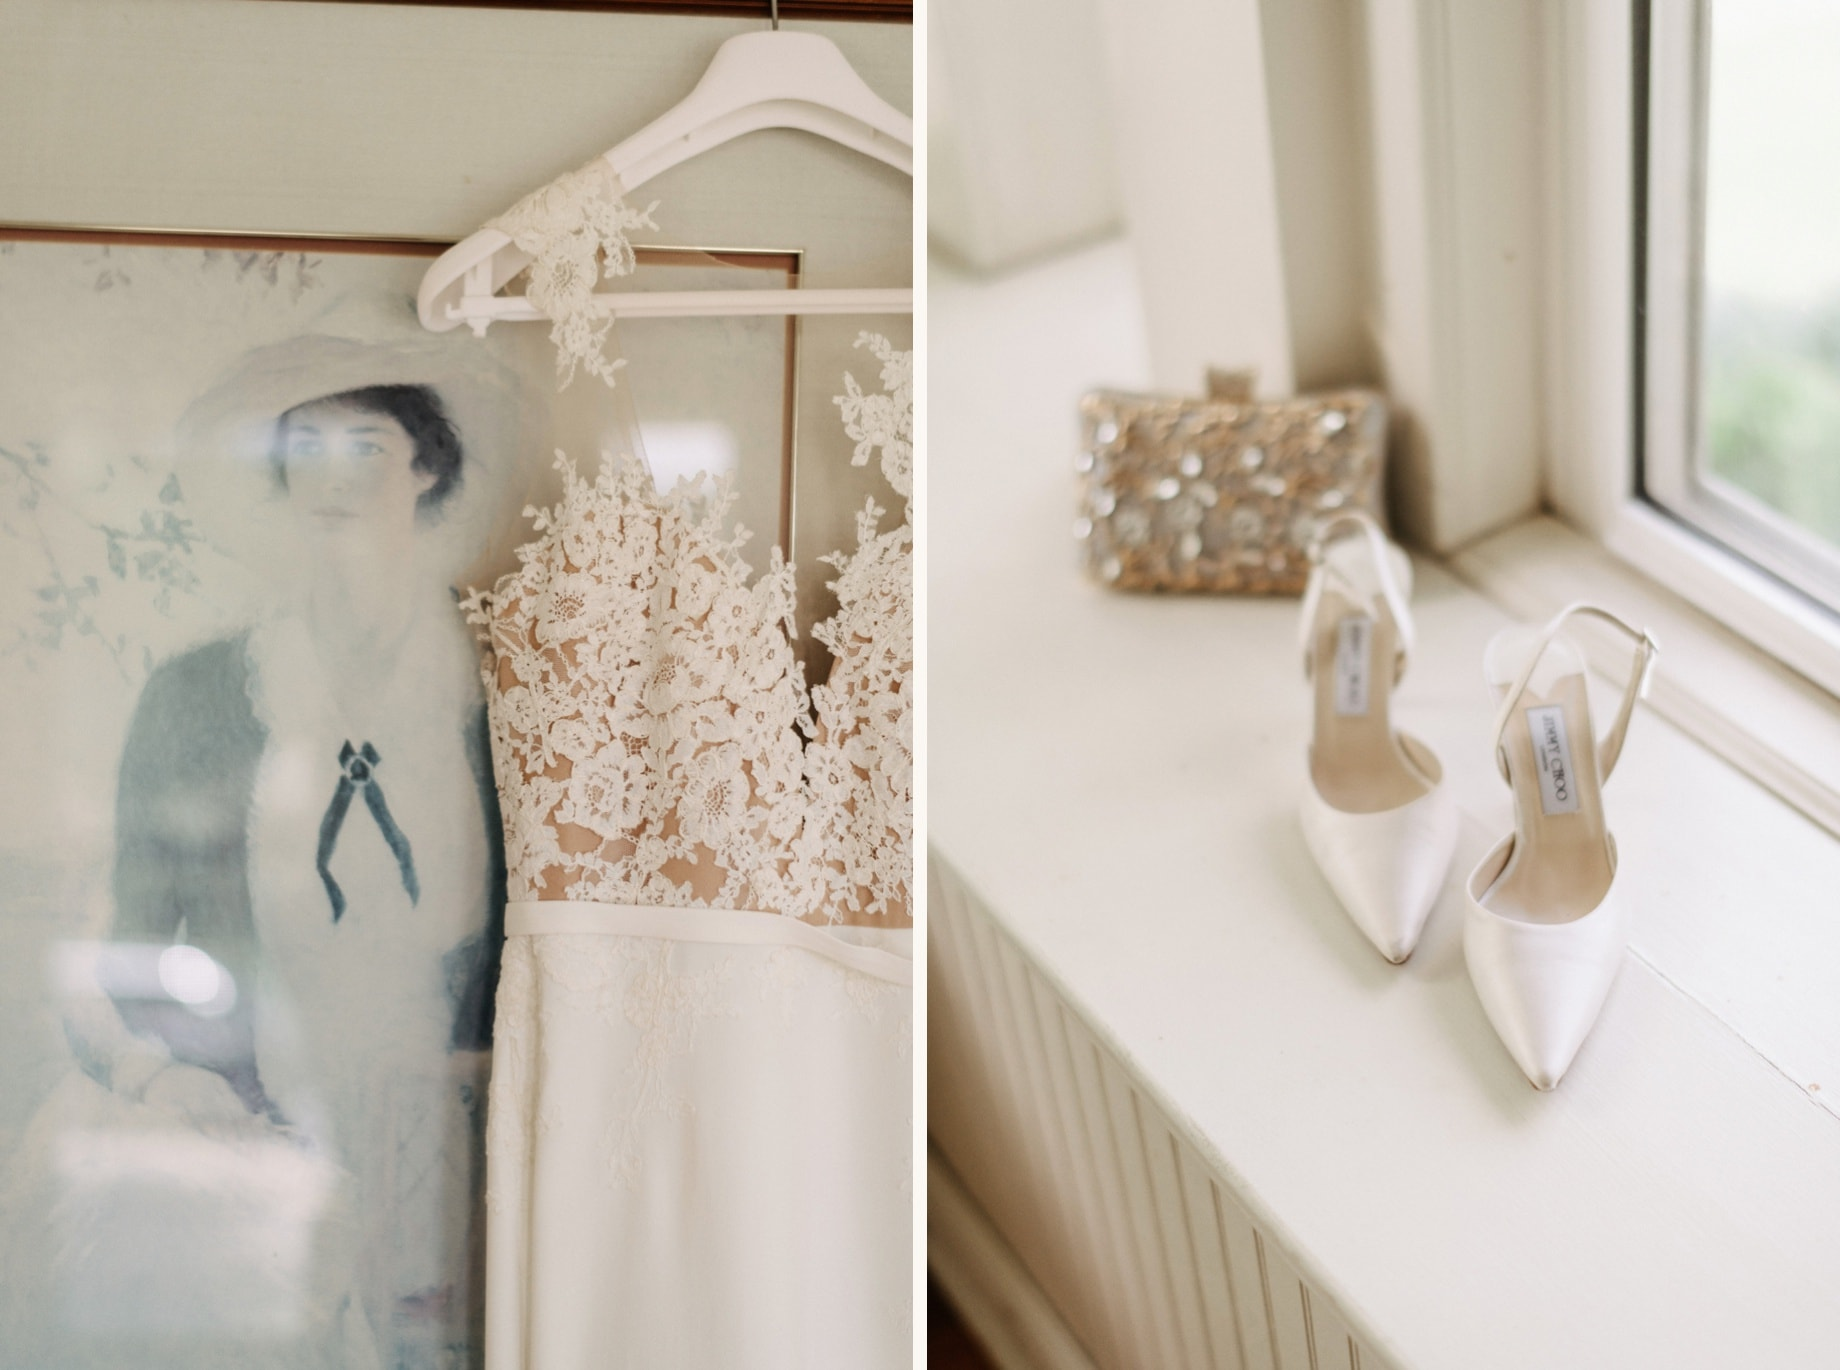 Bridal Details photographed at the wellers hospitality house